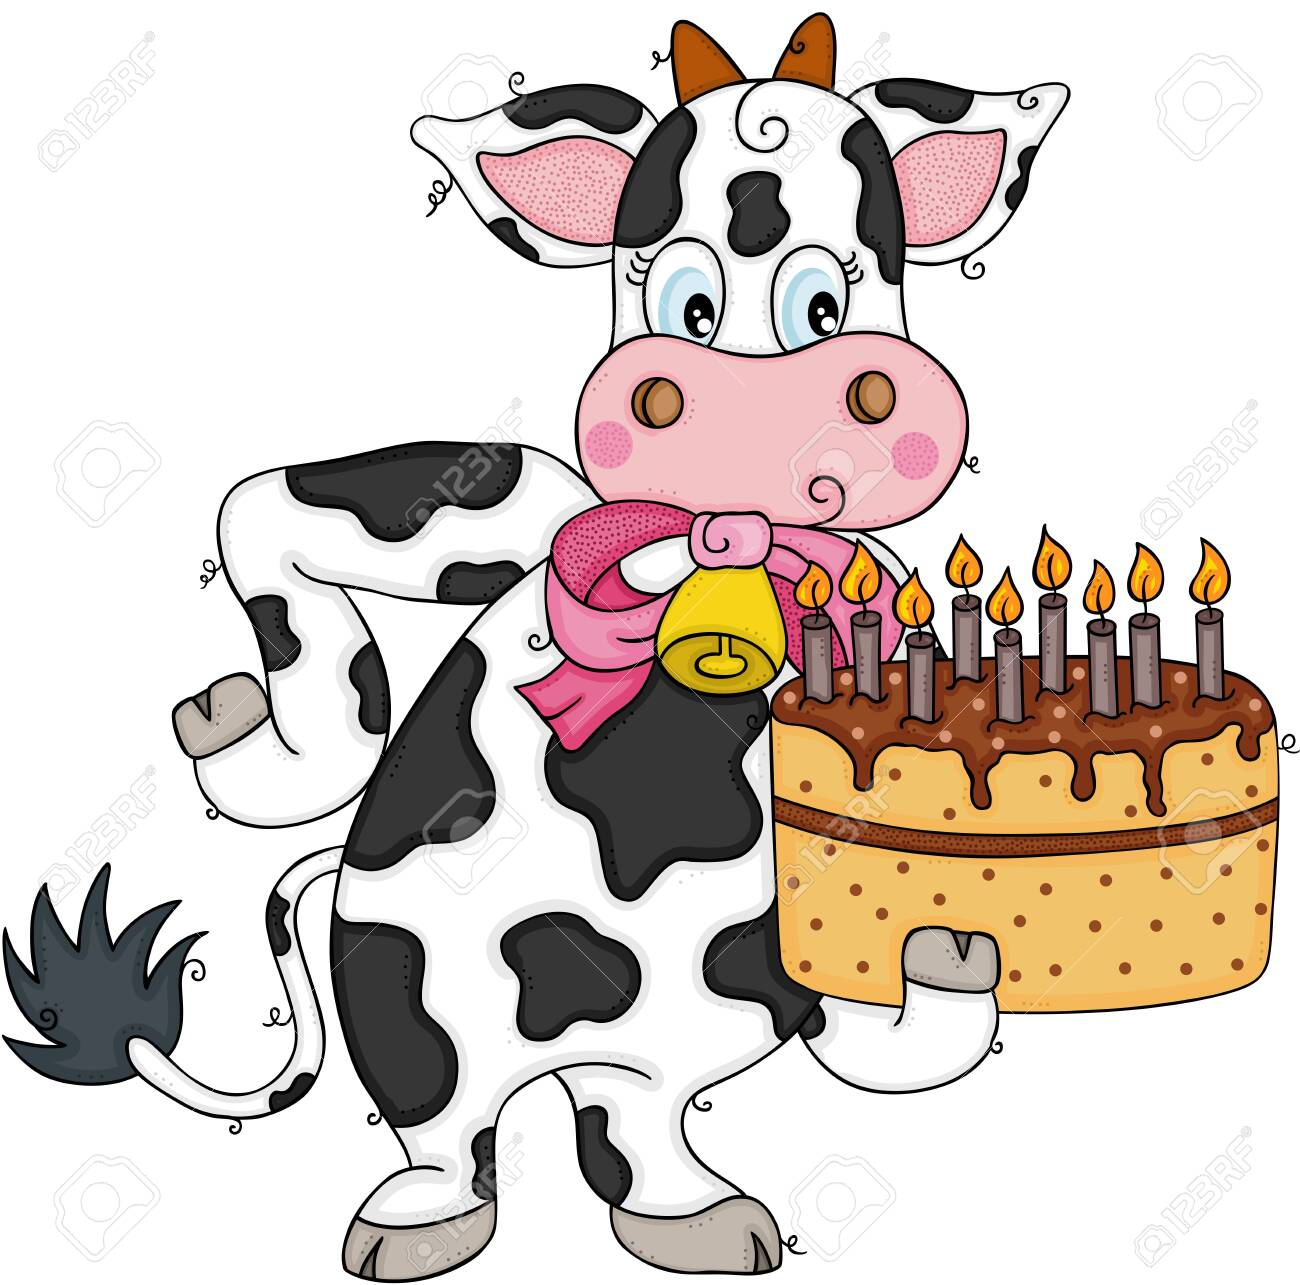 Fantastic Cute Cow Holding A Birthday Cake Royalty Free Cliparts Vectors Funny Birthday Cards Online Overcheapnameinfo